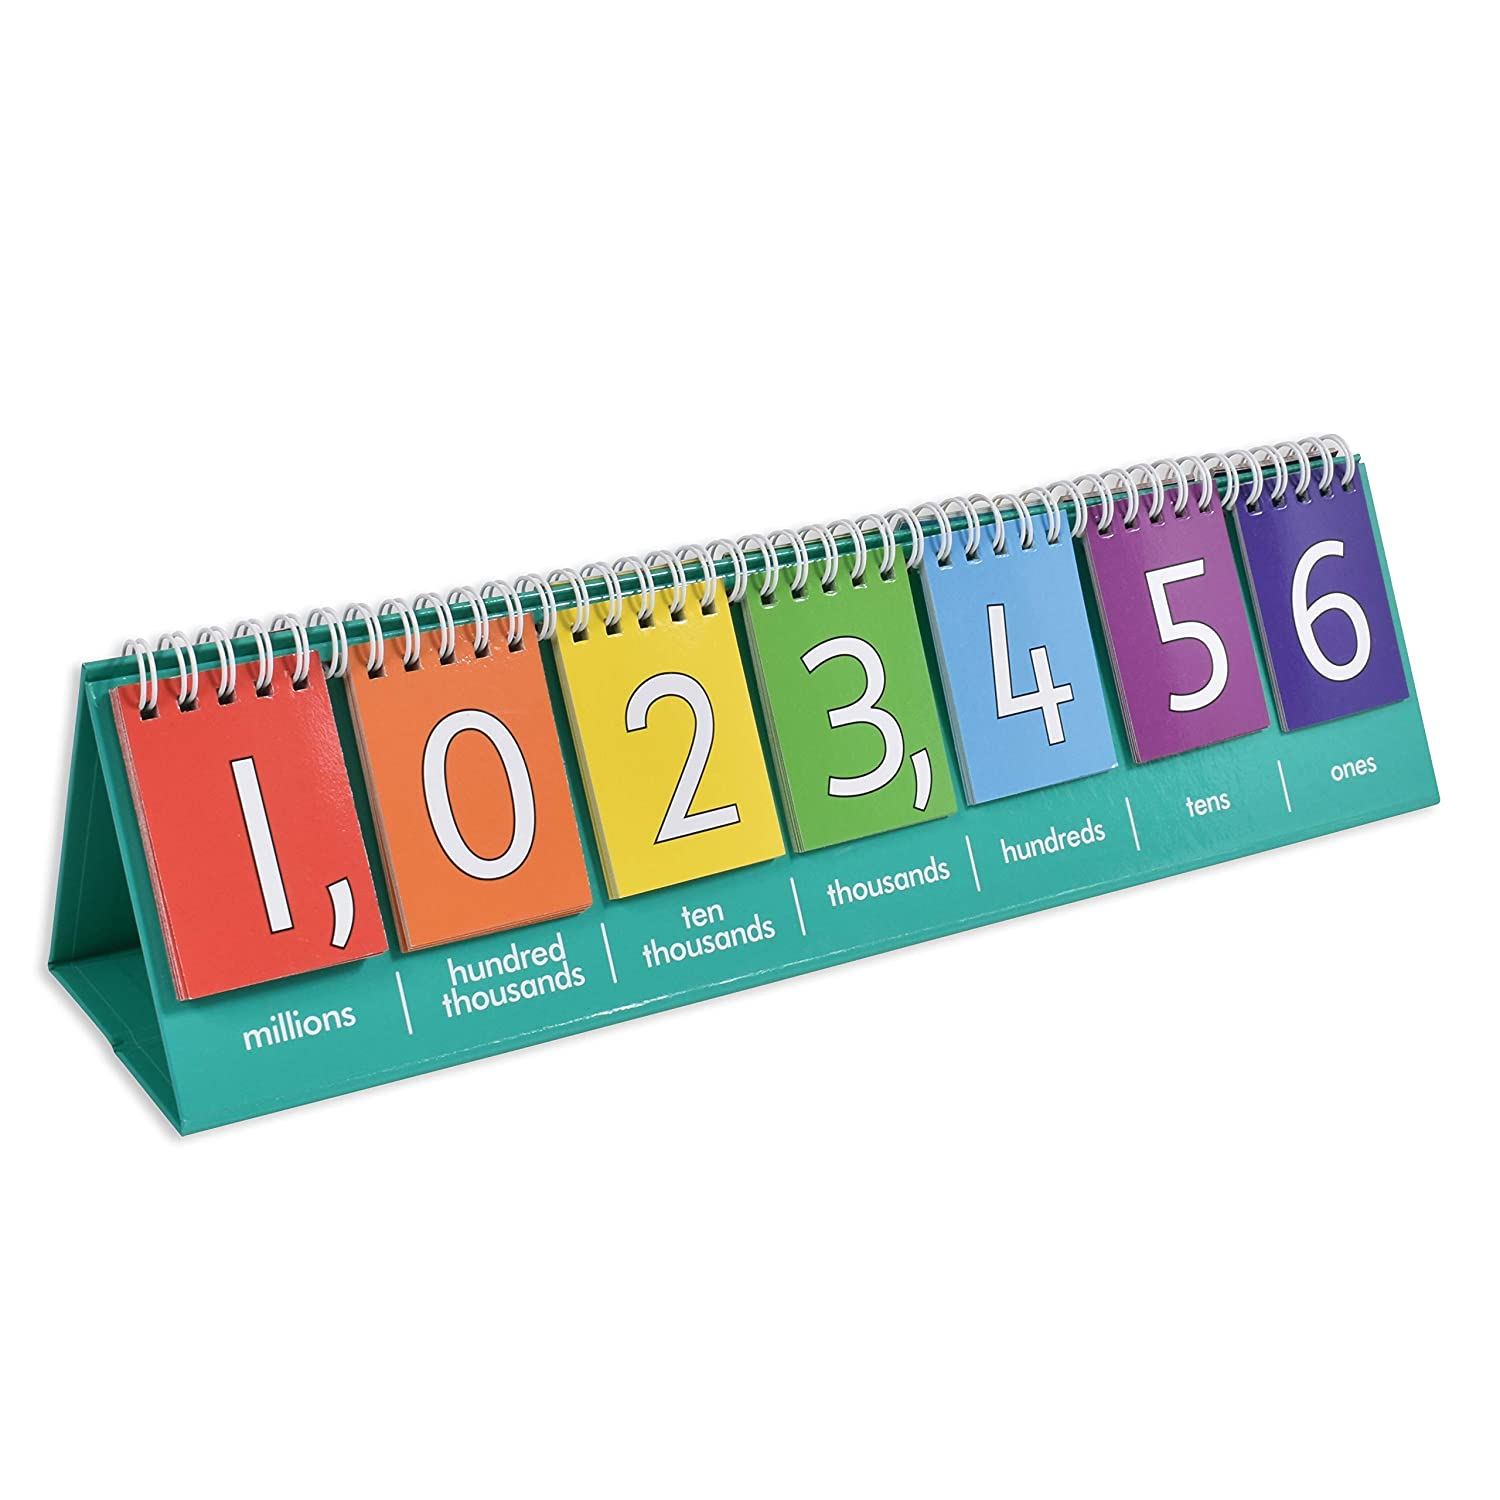 Tens Millions Edx Education Student Place Value Flip Chart Hundreds Double-Sided with Whole Numbers and Decimals Learn to Count by Ones Thousands and Millions